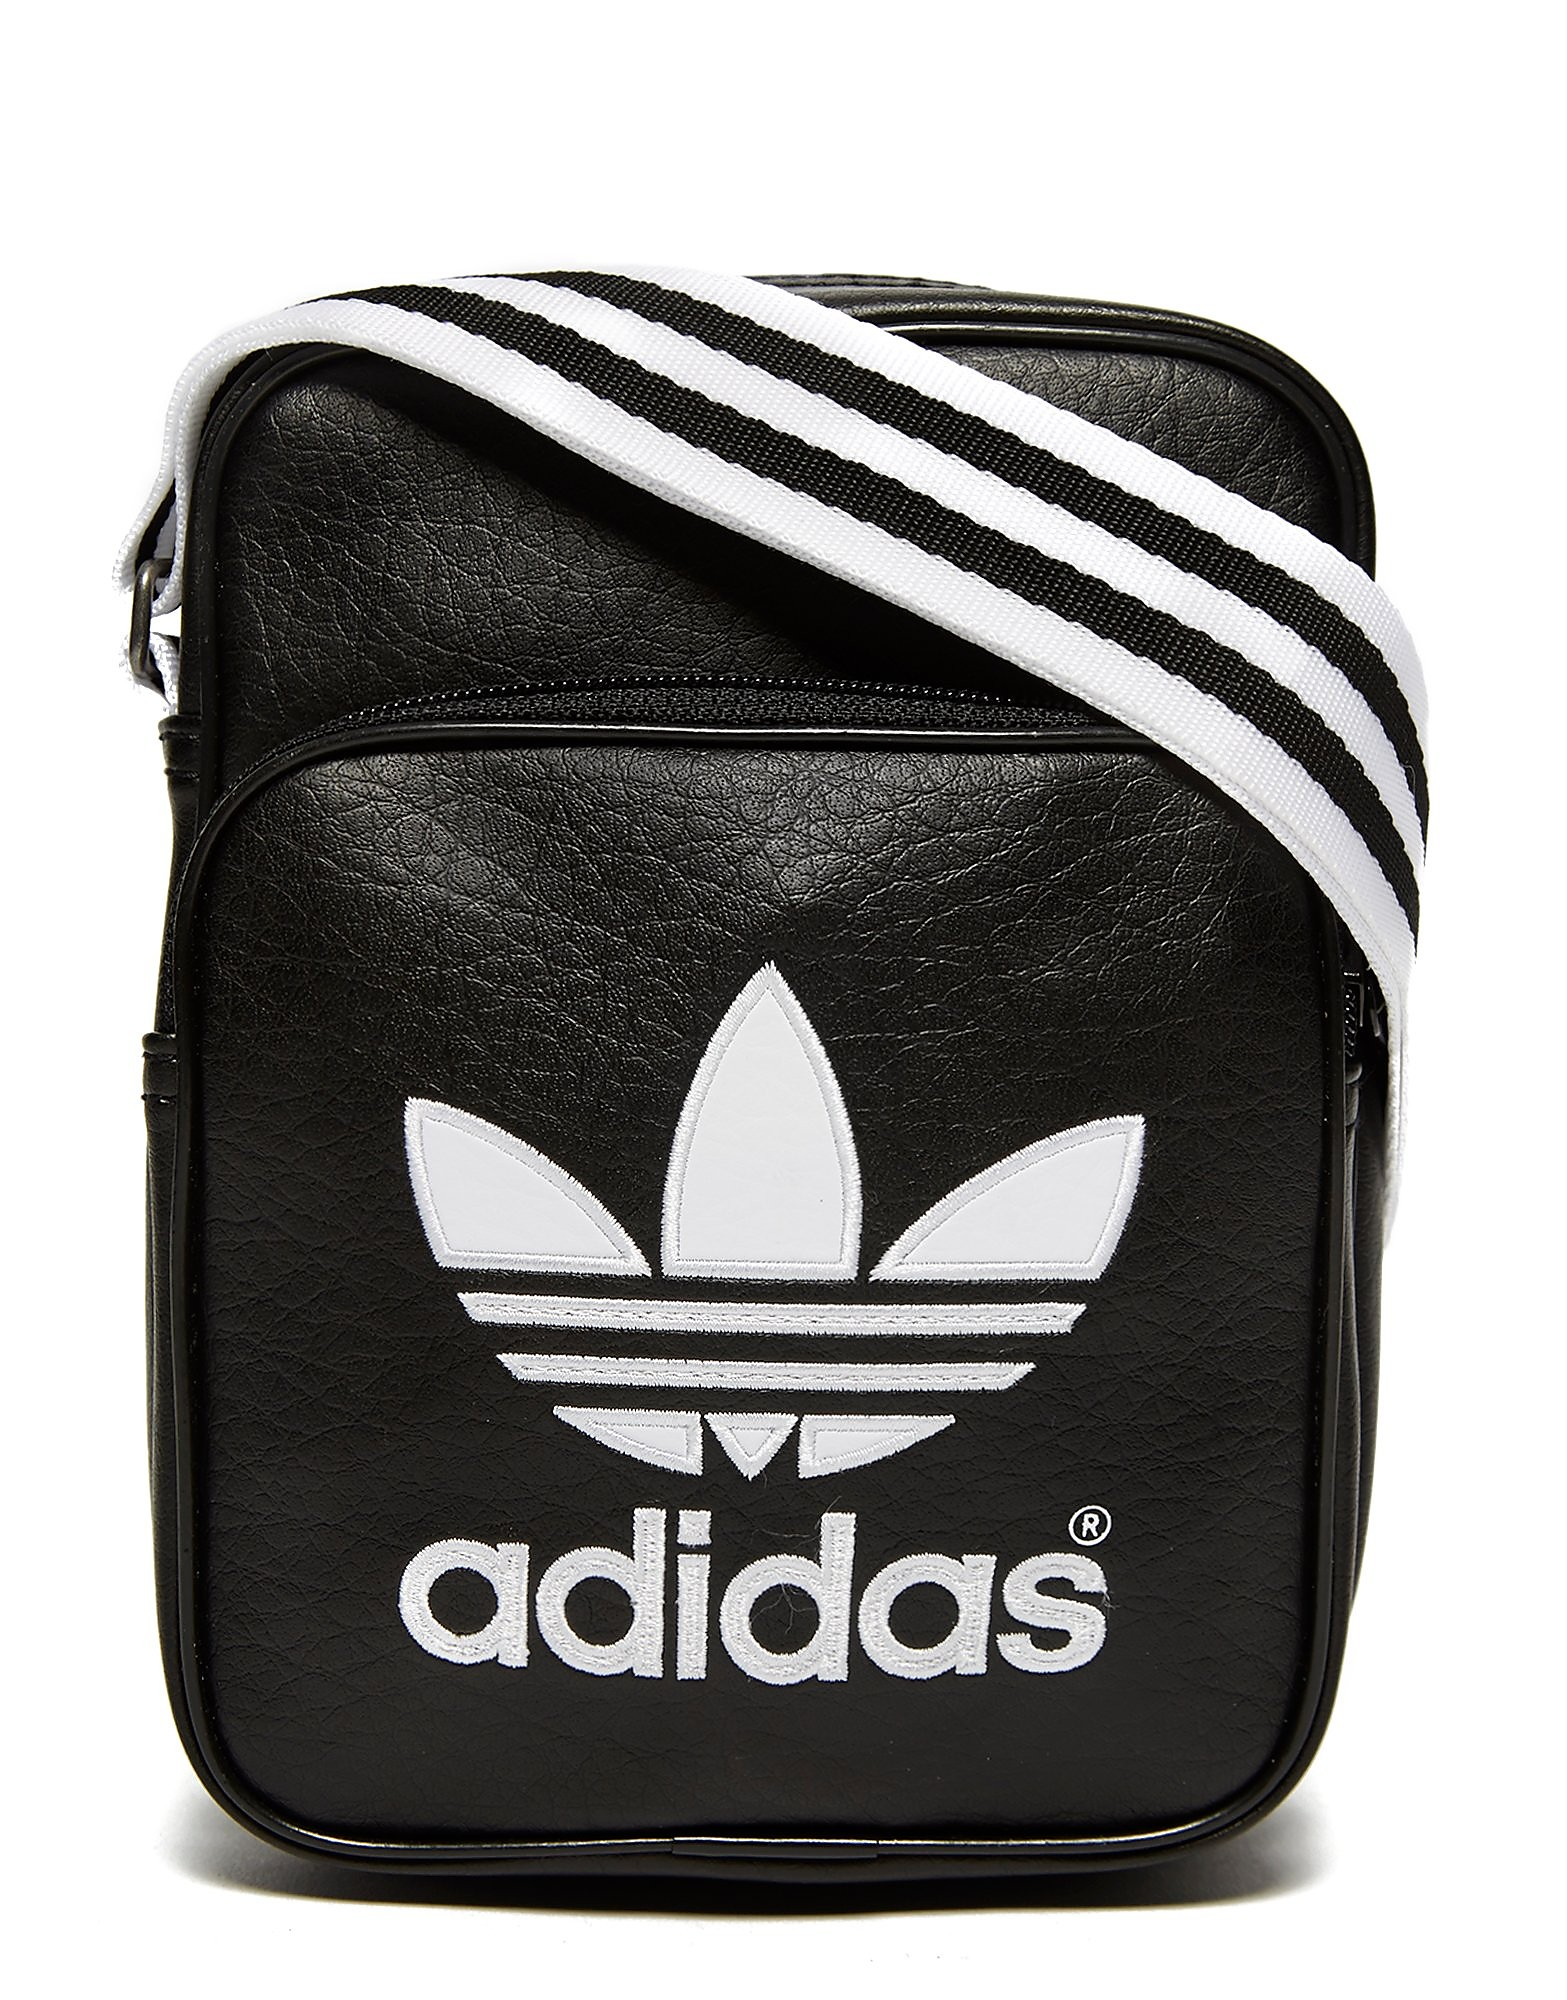 adidas Originals Small Items Tasche